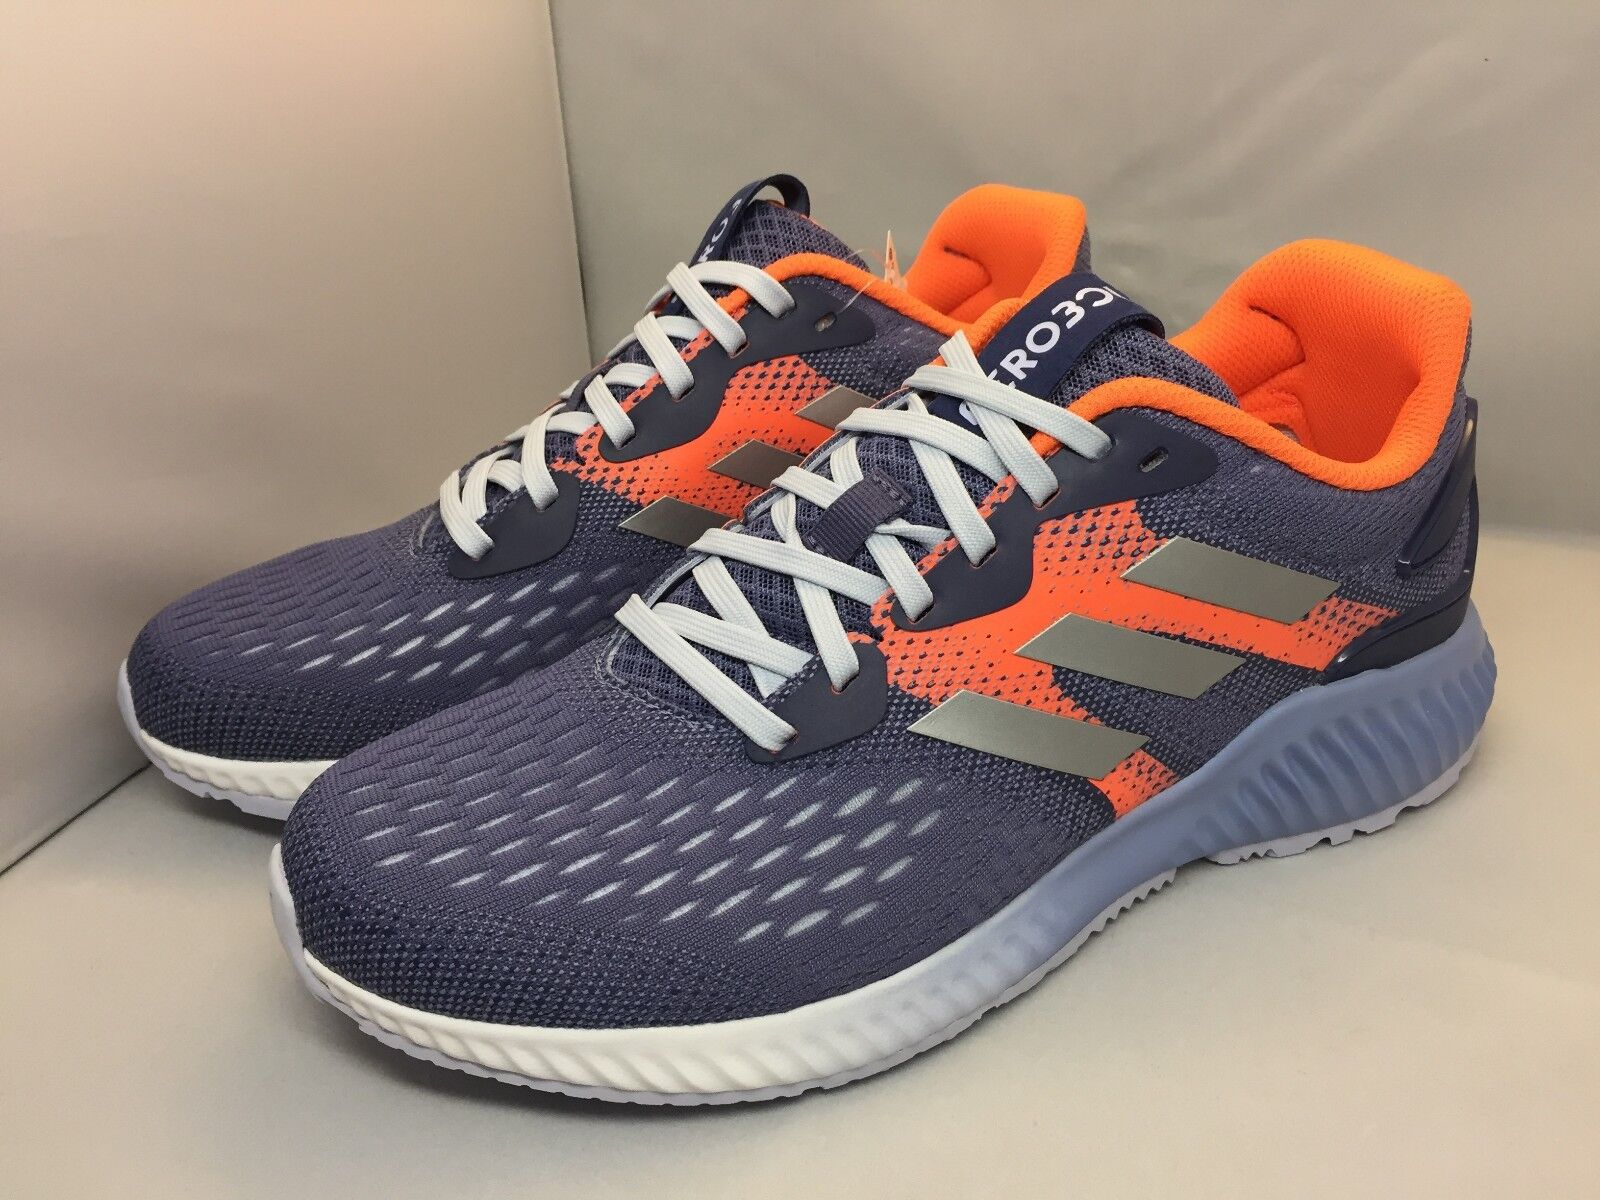 Adidas Women's Shoes Aerobounce Running DA9964 Gray/Orange